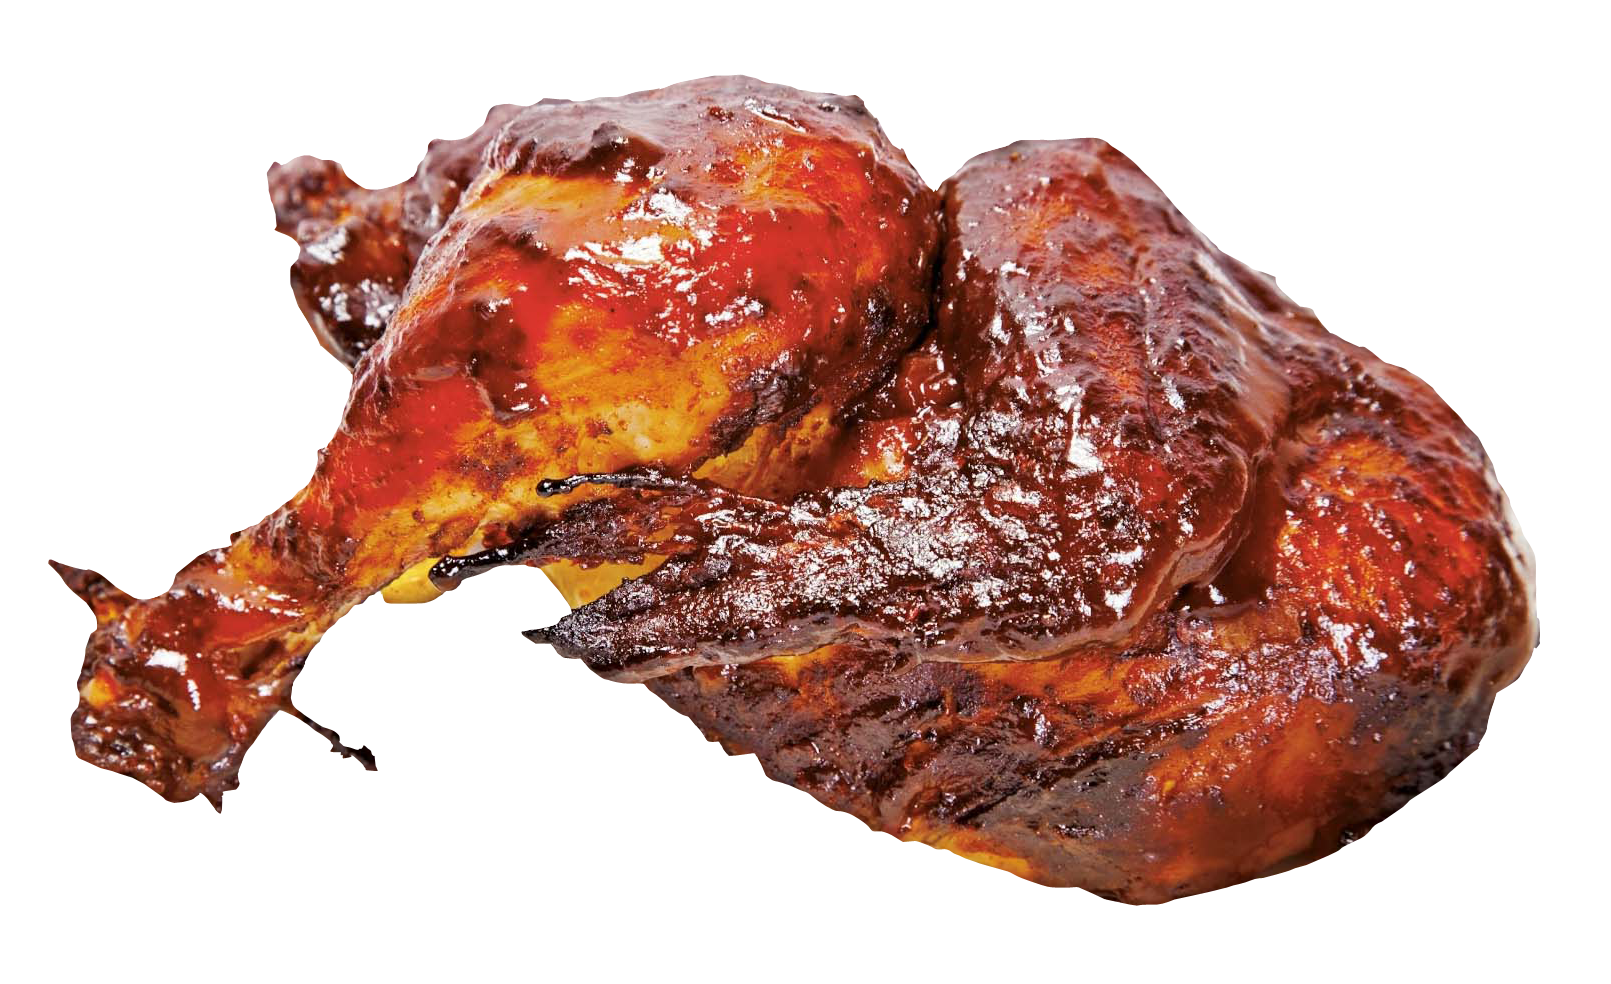 Bbq chicken png. Barbecue images free download